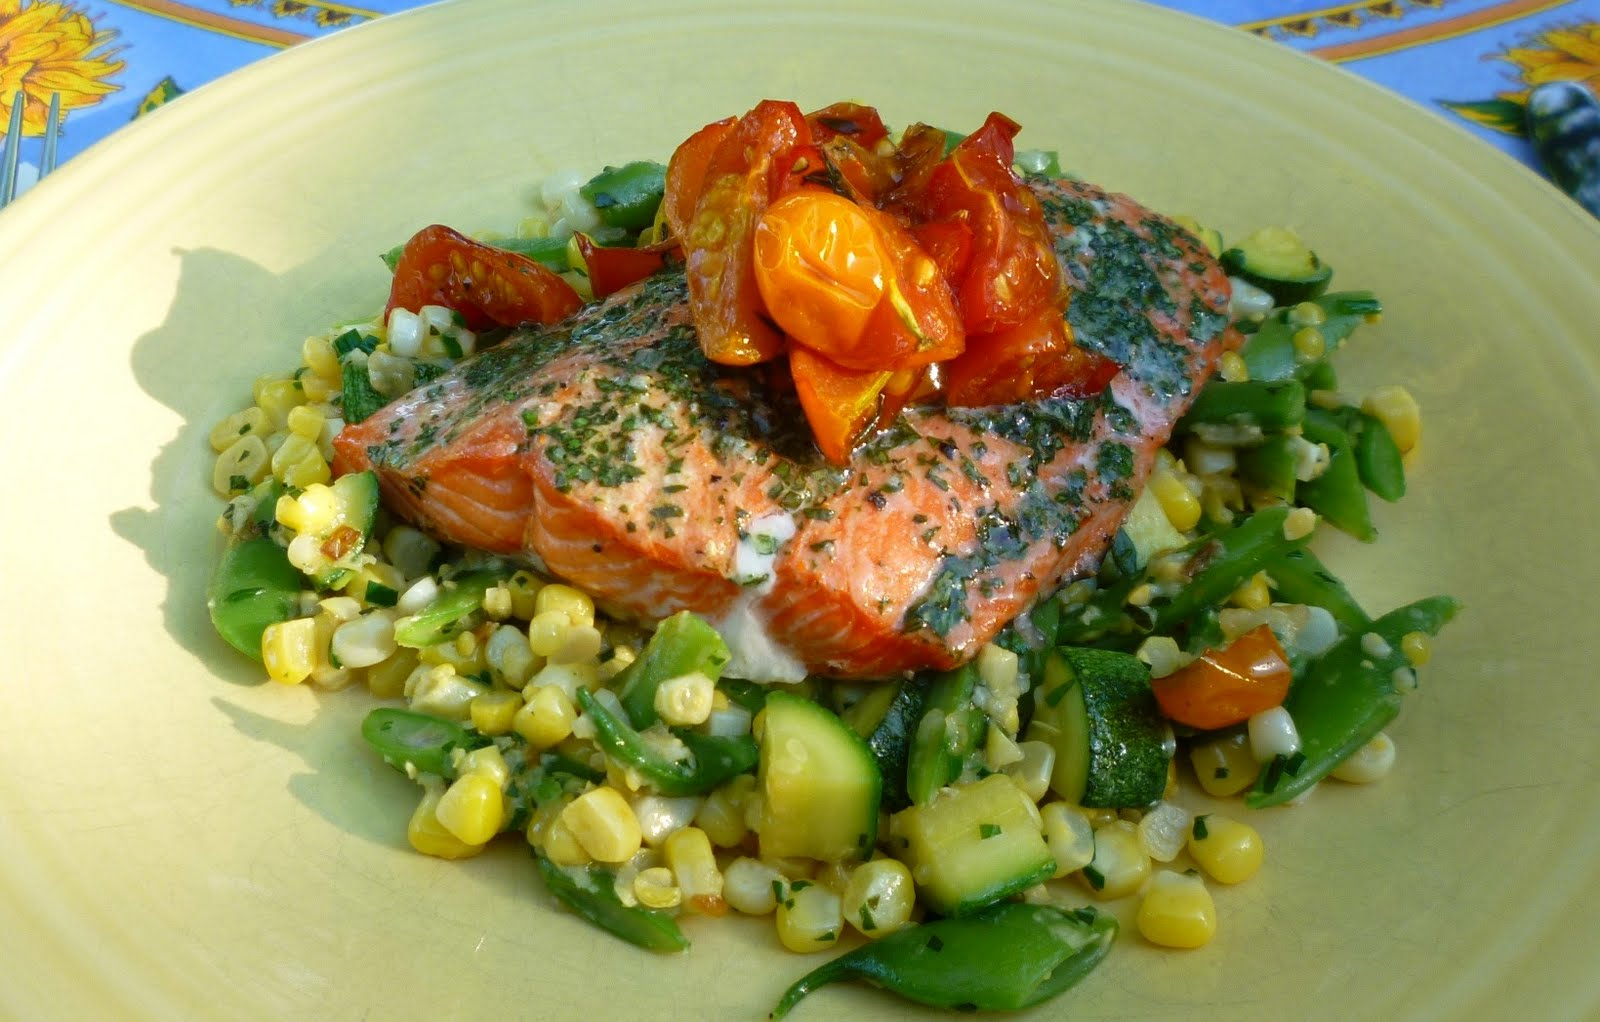 ... with Corn on the Cob, Sockeye Salmon and a Quick Vegetable Sauté